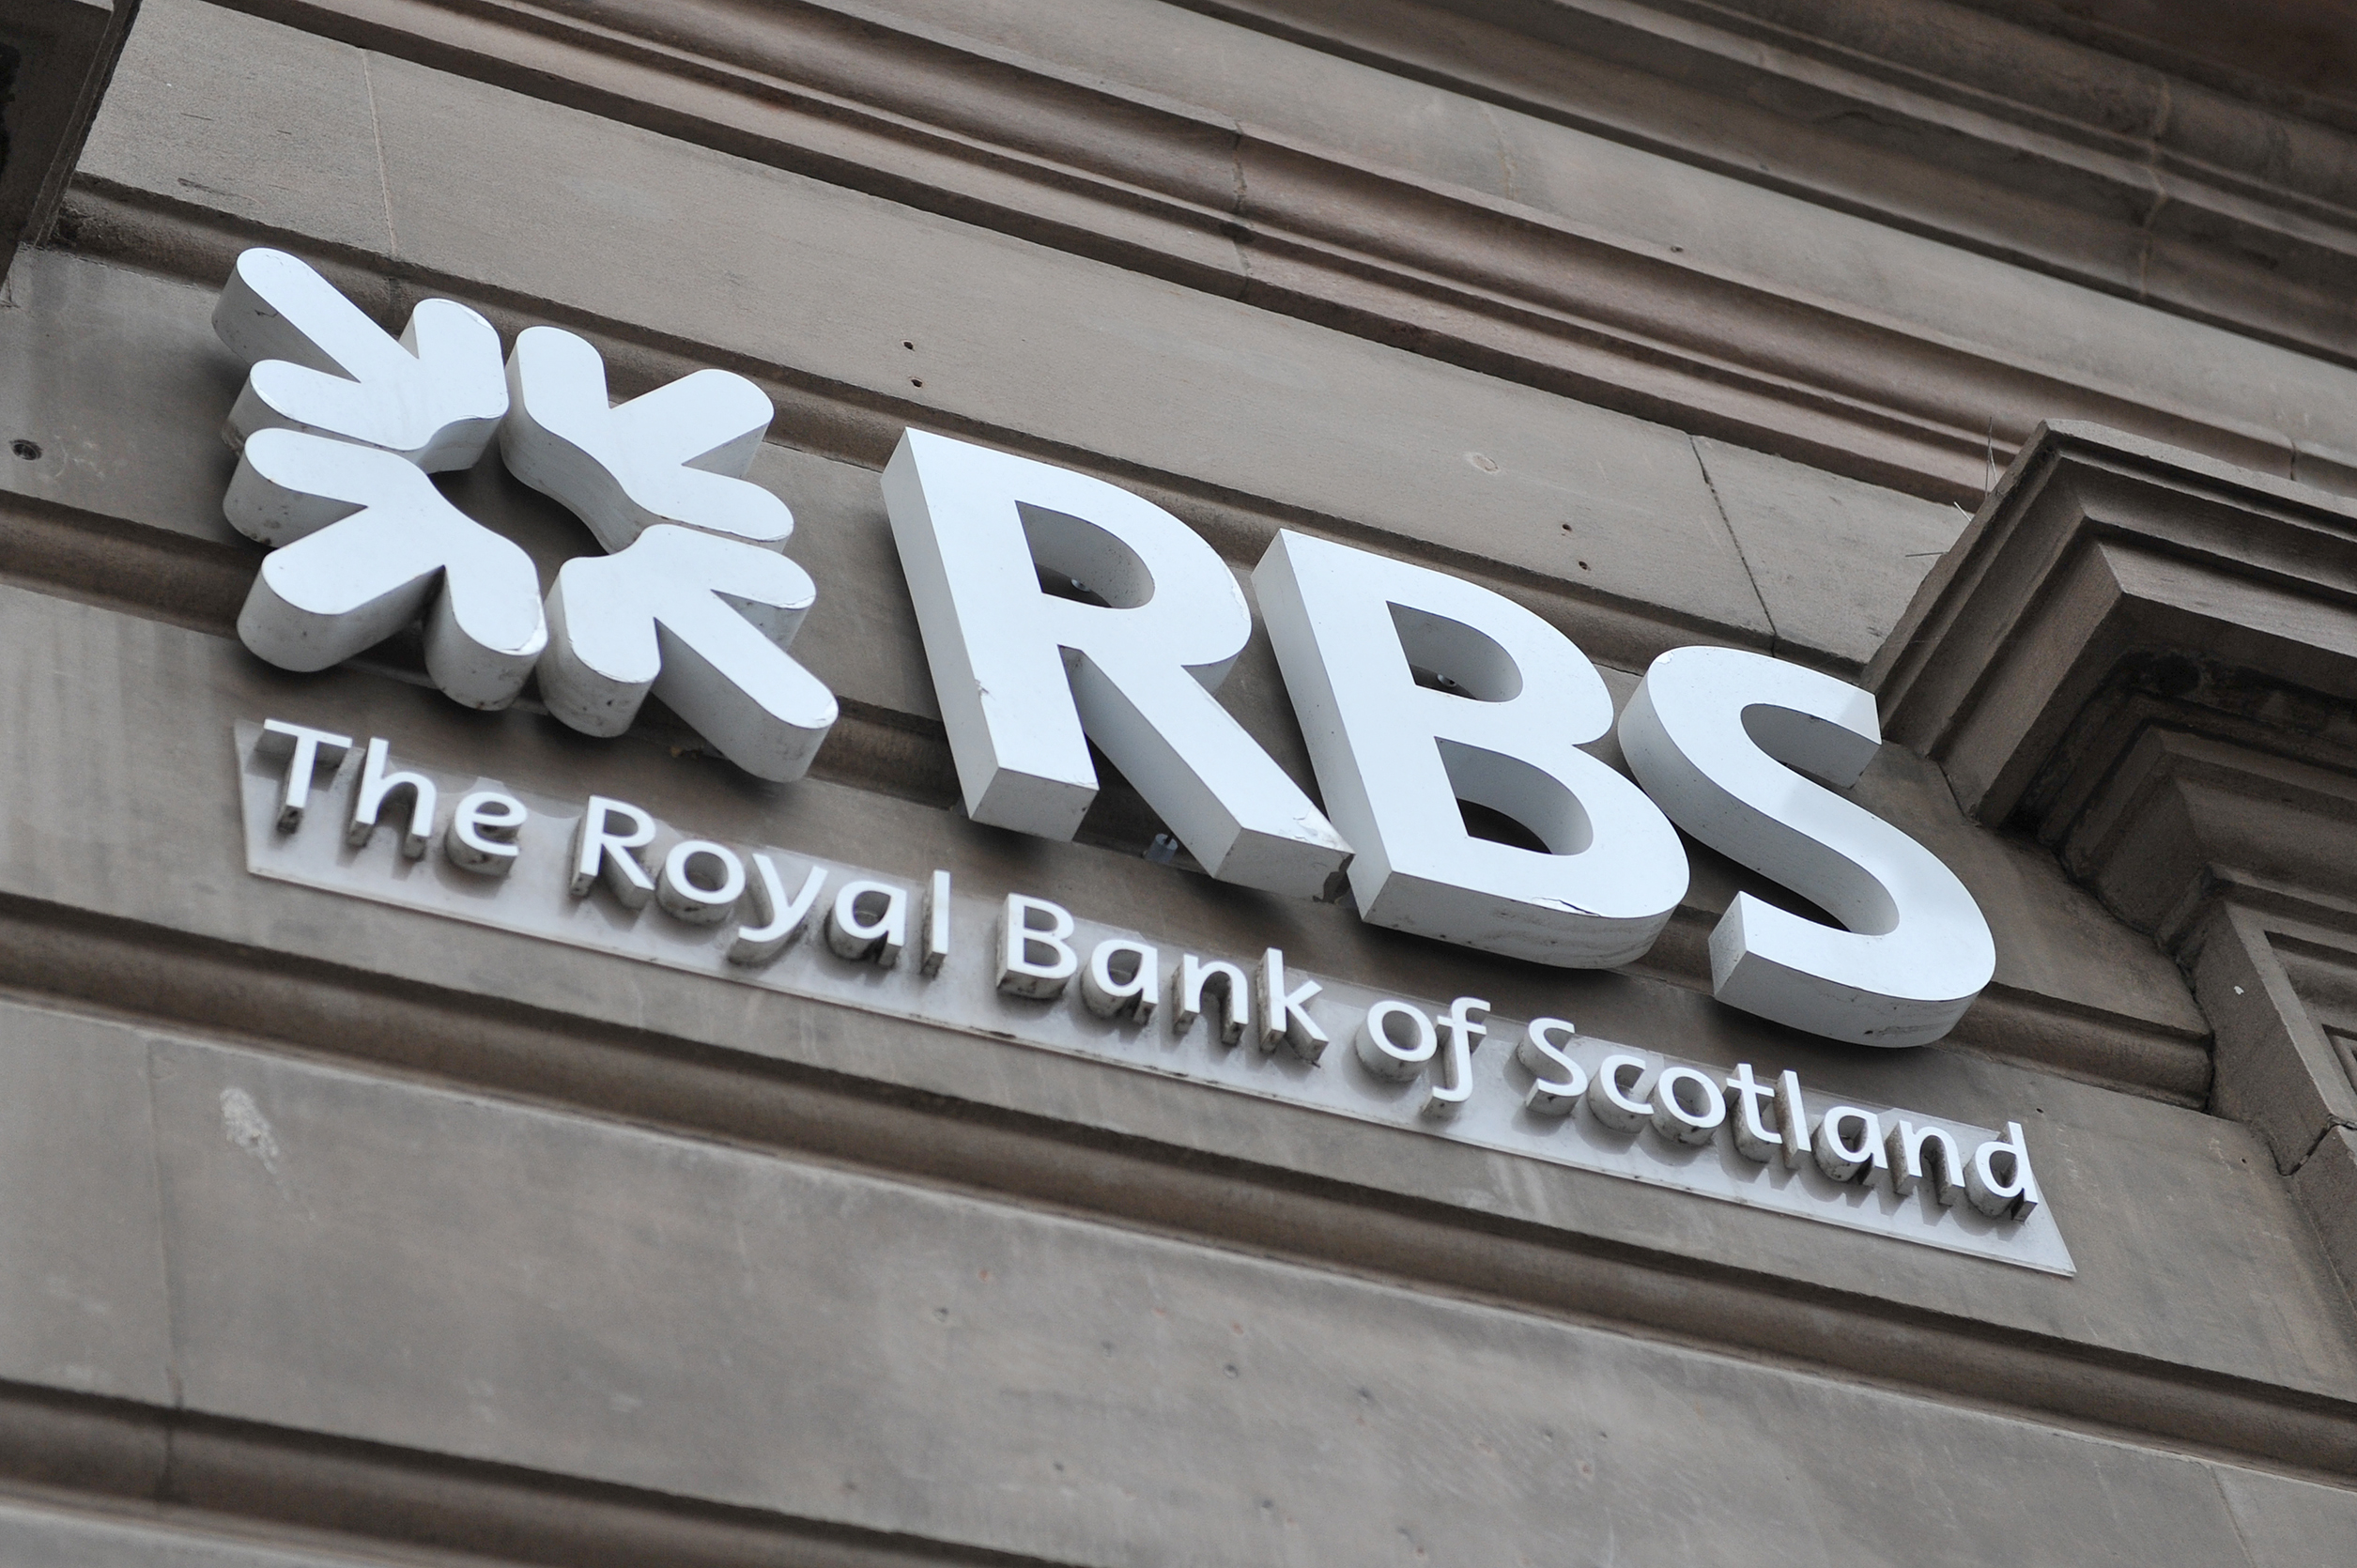 Building exterior of the Royal Bank of Scotland, High Street.